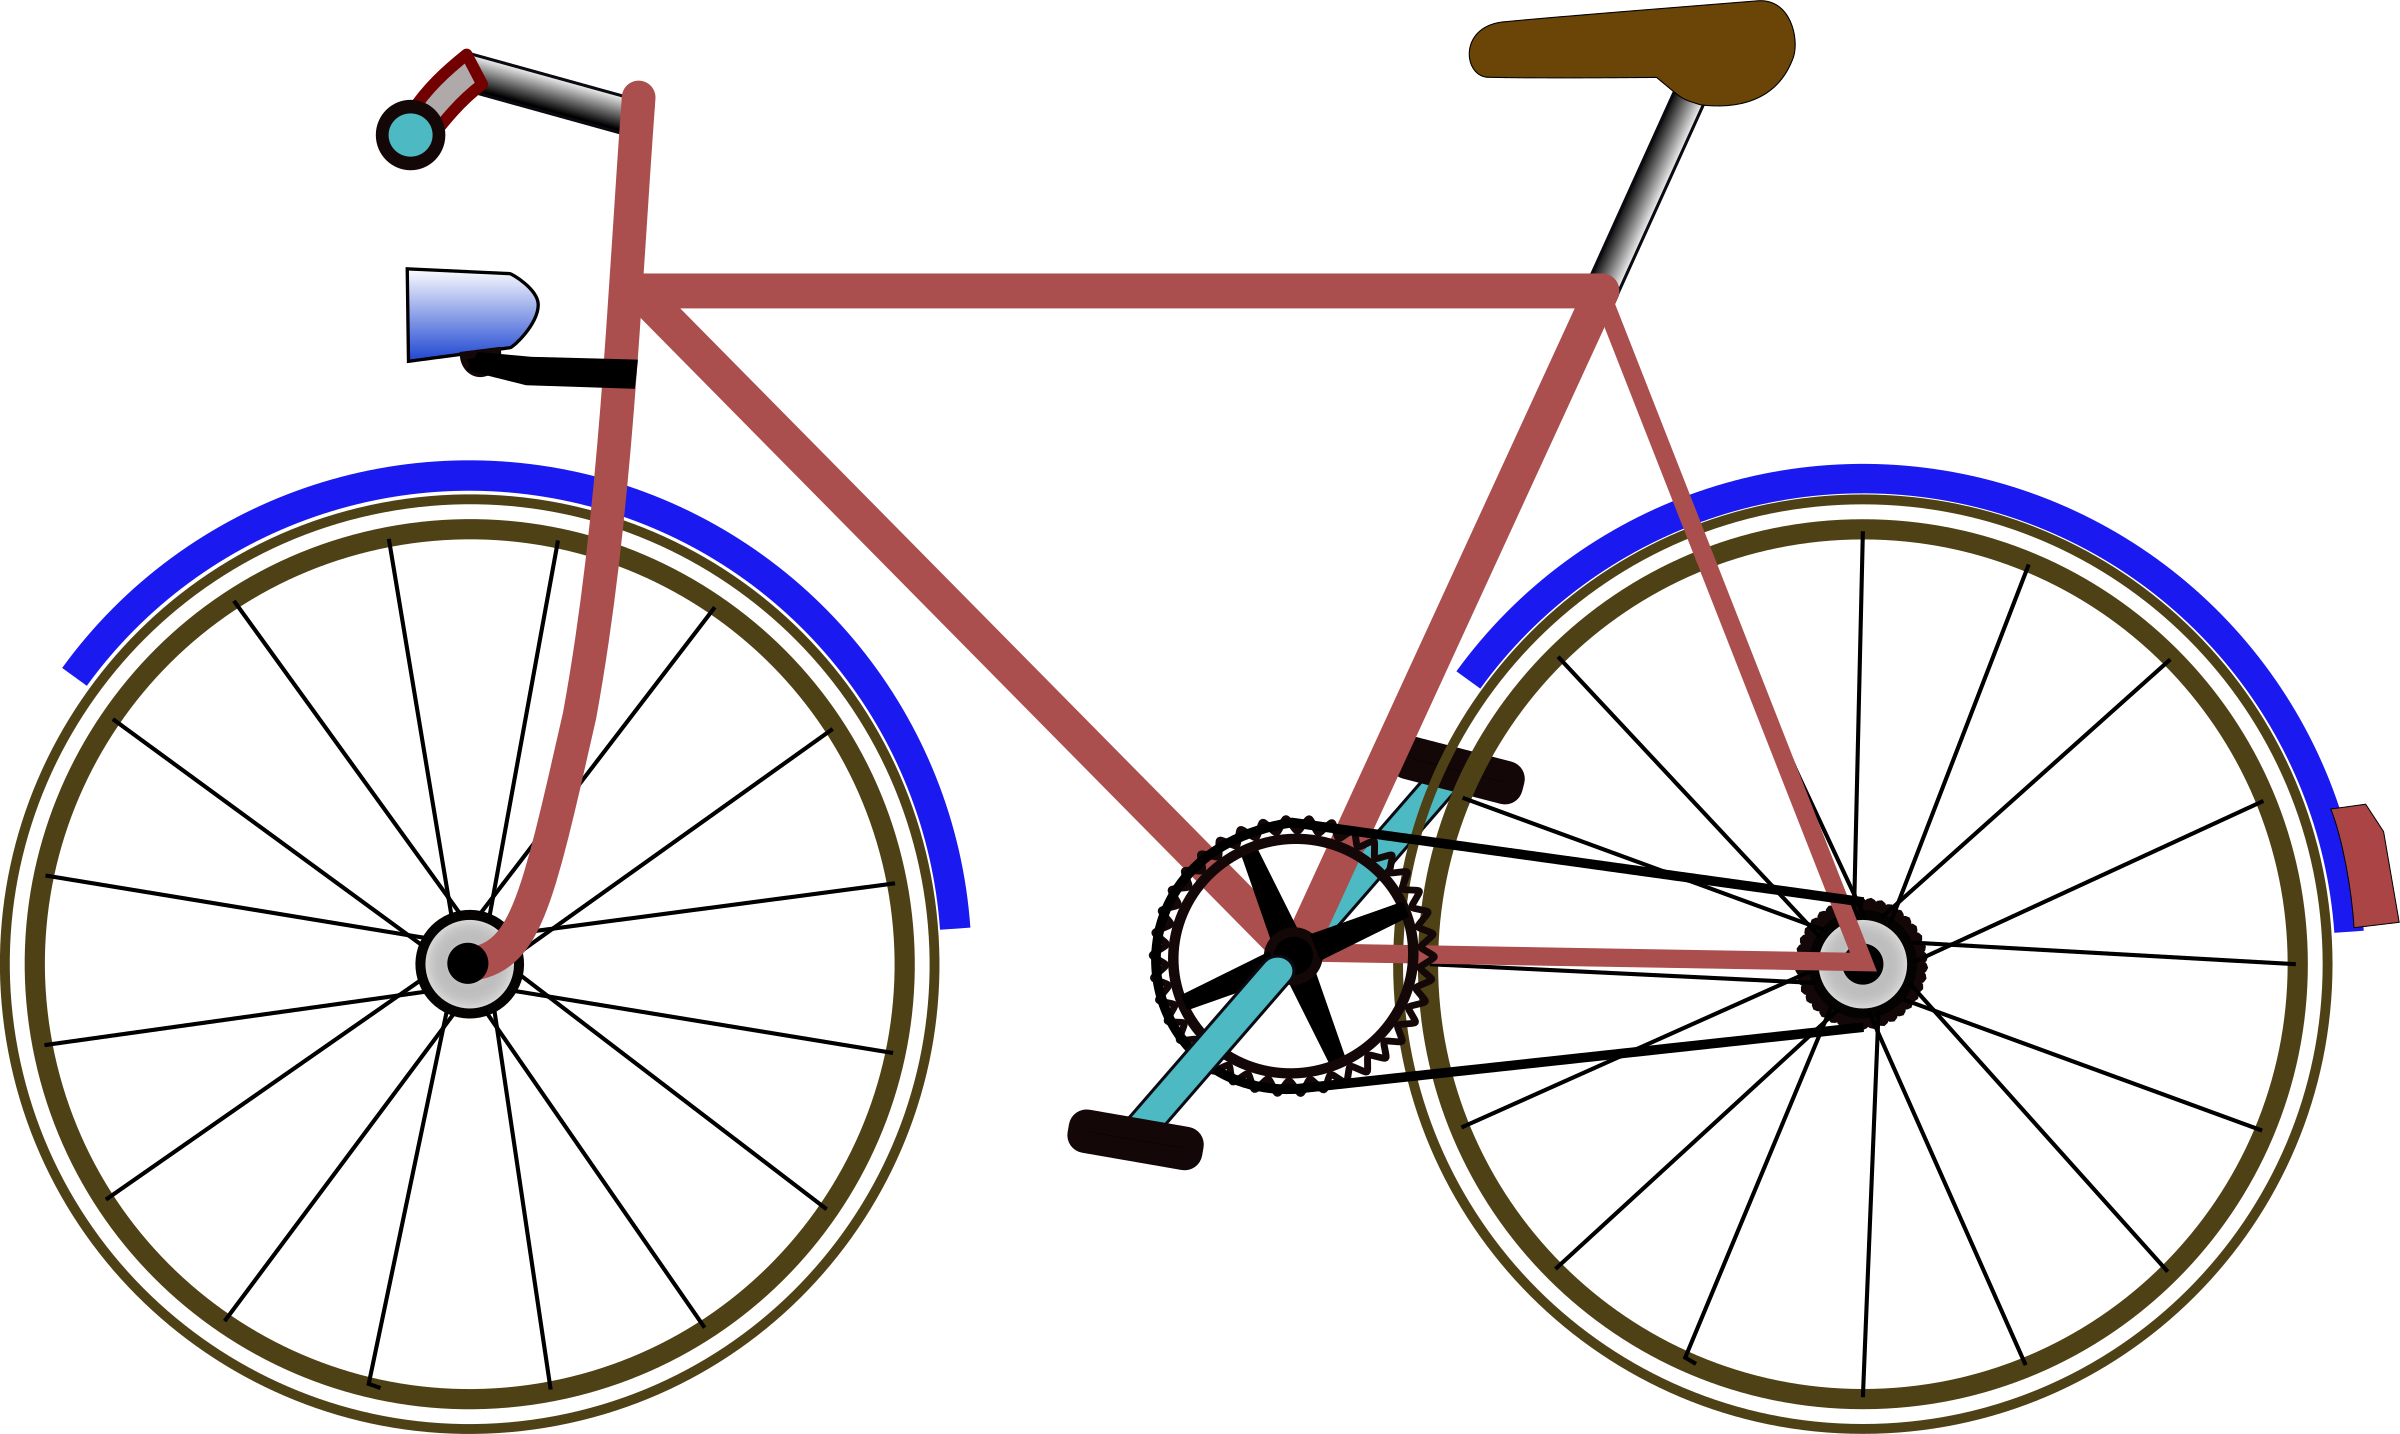 Clipart bicycle transparent background. Big image png